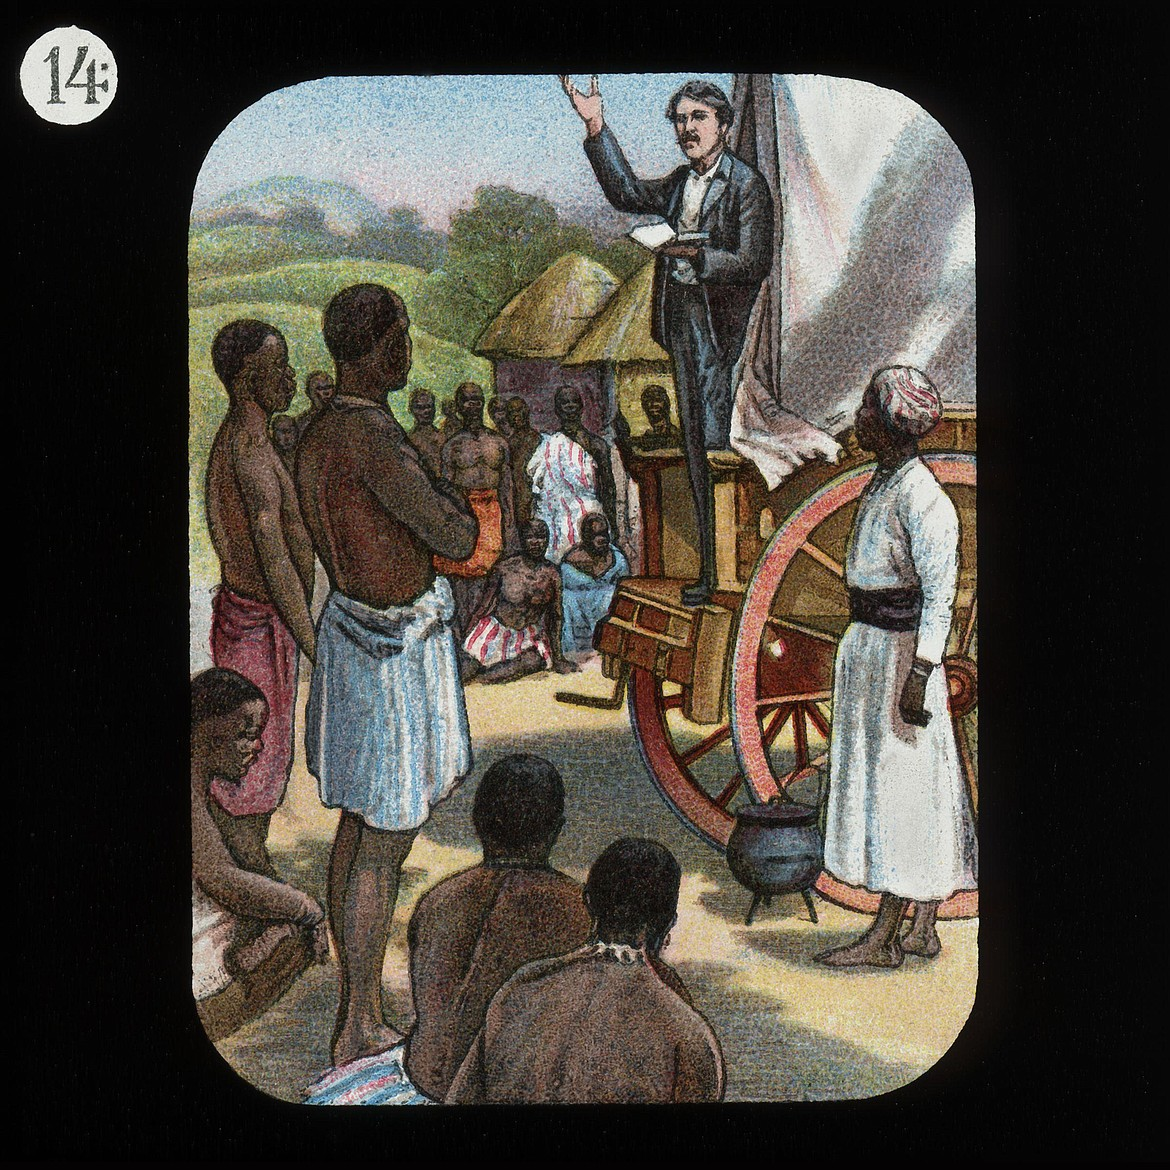 WIKIMEDIA COMMONS   David Livingstone preaching Christianity to Africans, converting only one person during his years of missionary work in the Dark Continent.